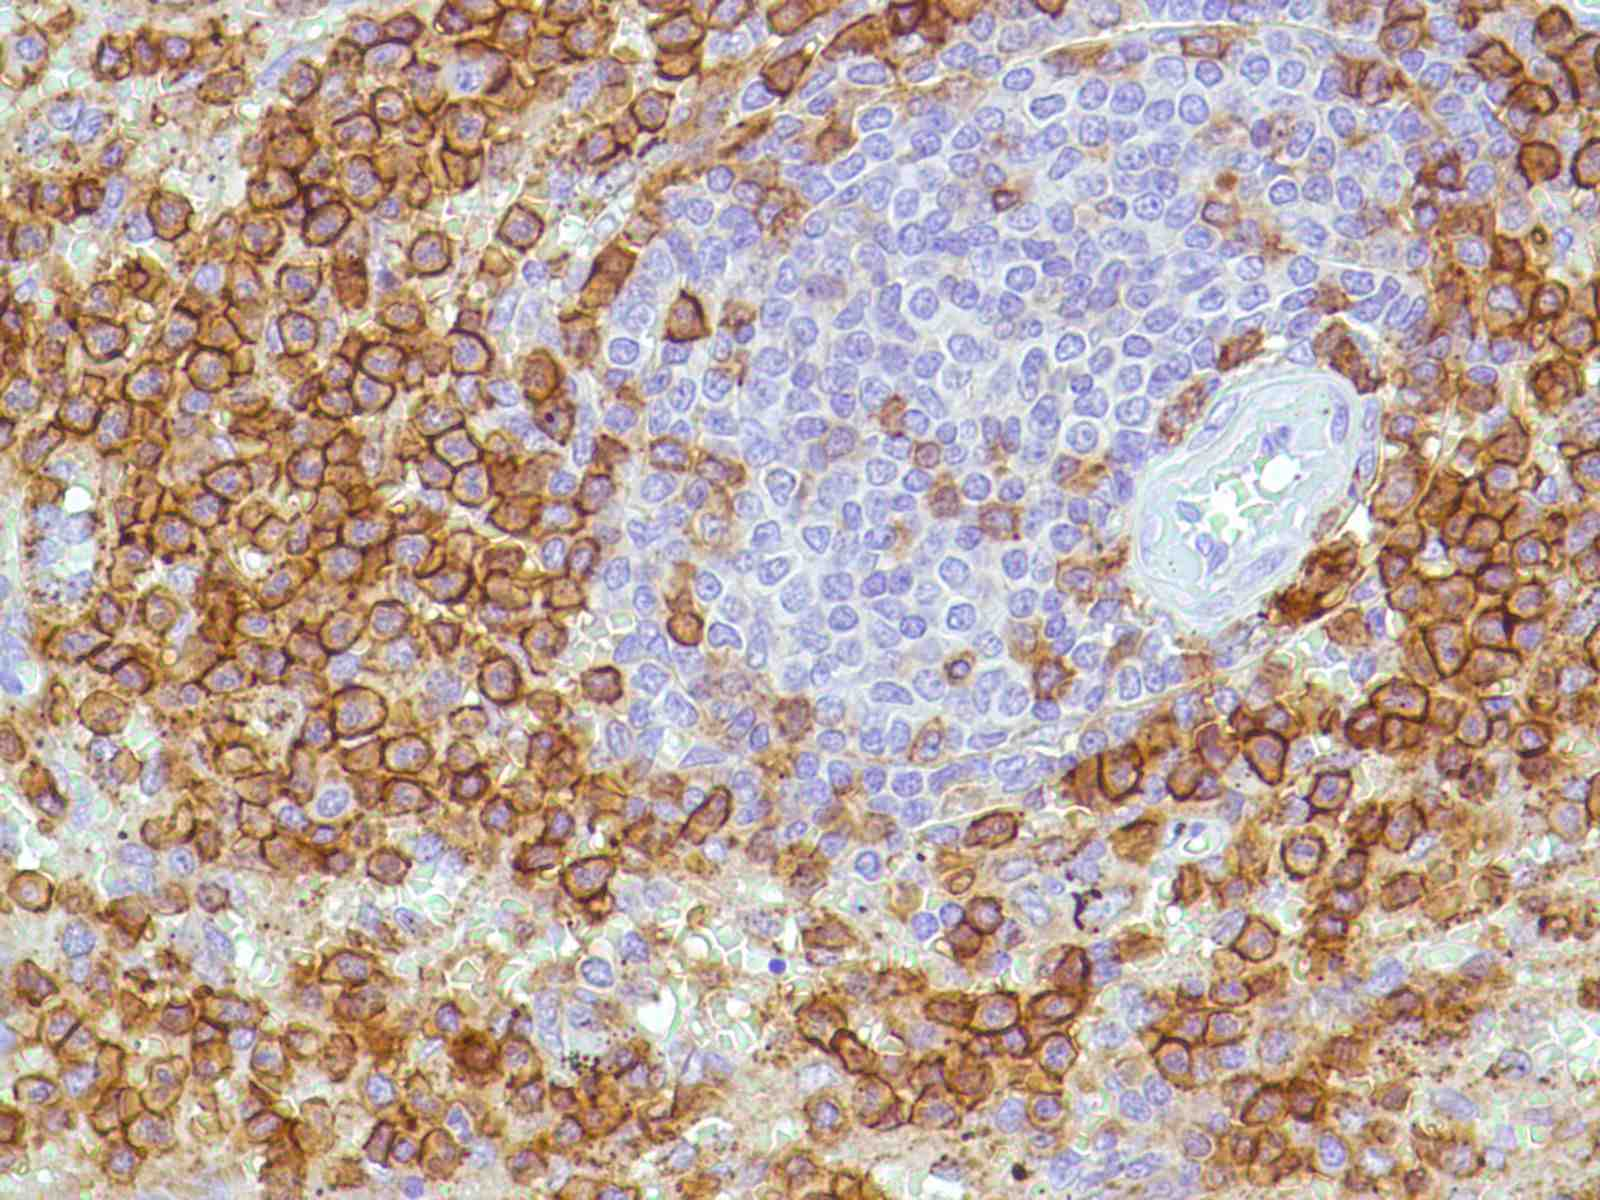 Human Spleen stained with anti-CD43 antibody